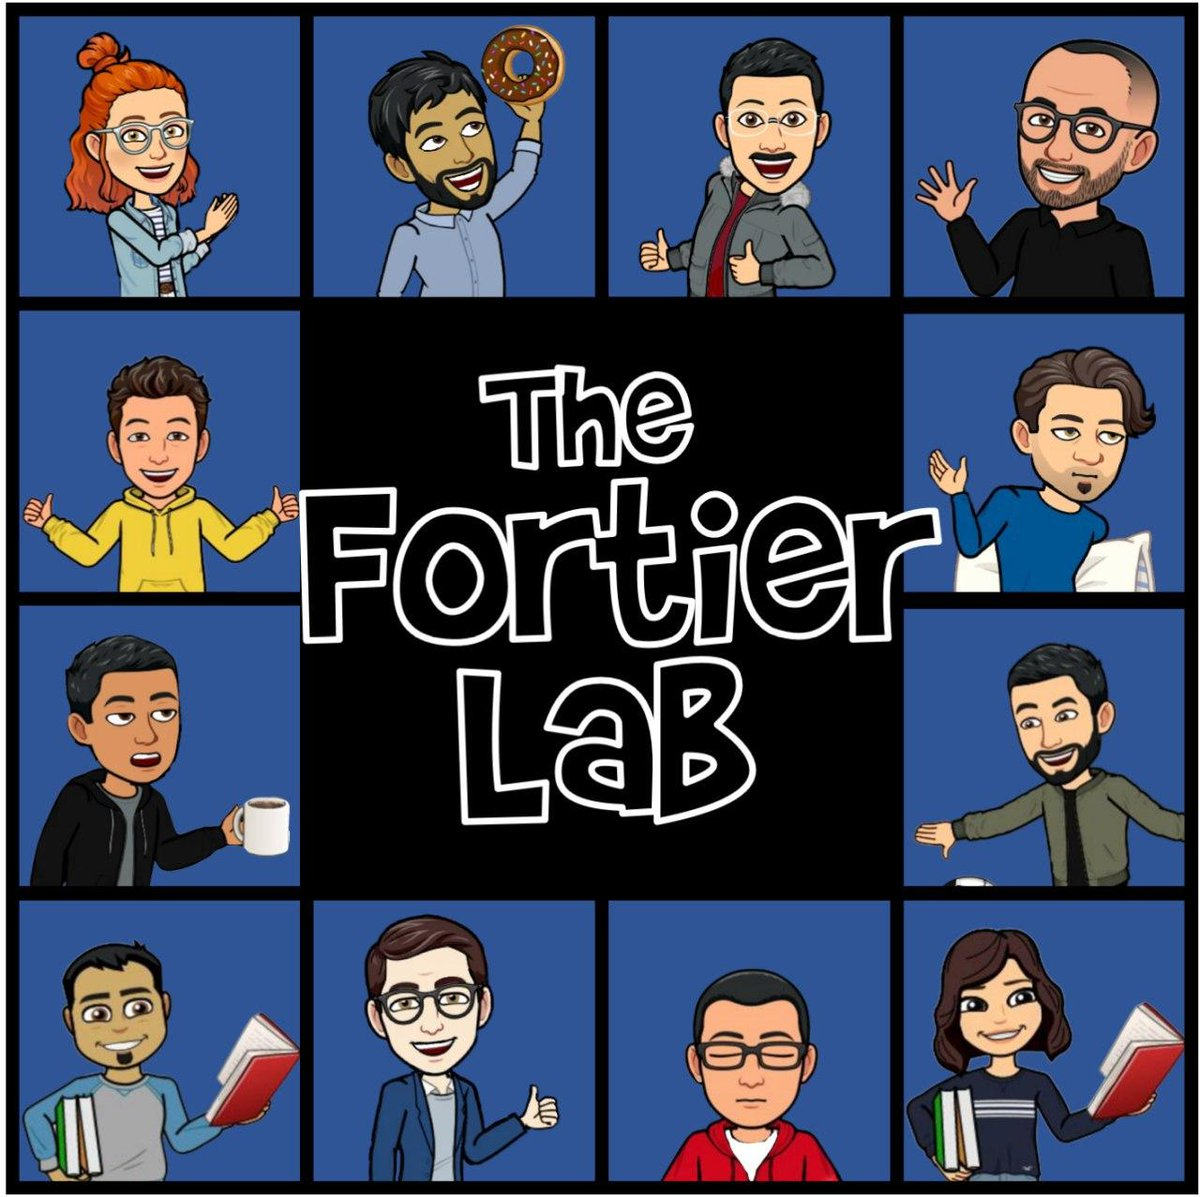 Fortier Laboratory (@FortierLab) on Twitter photo 2020-04-28 21:26:59